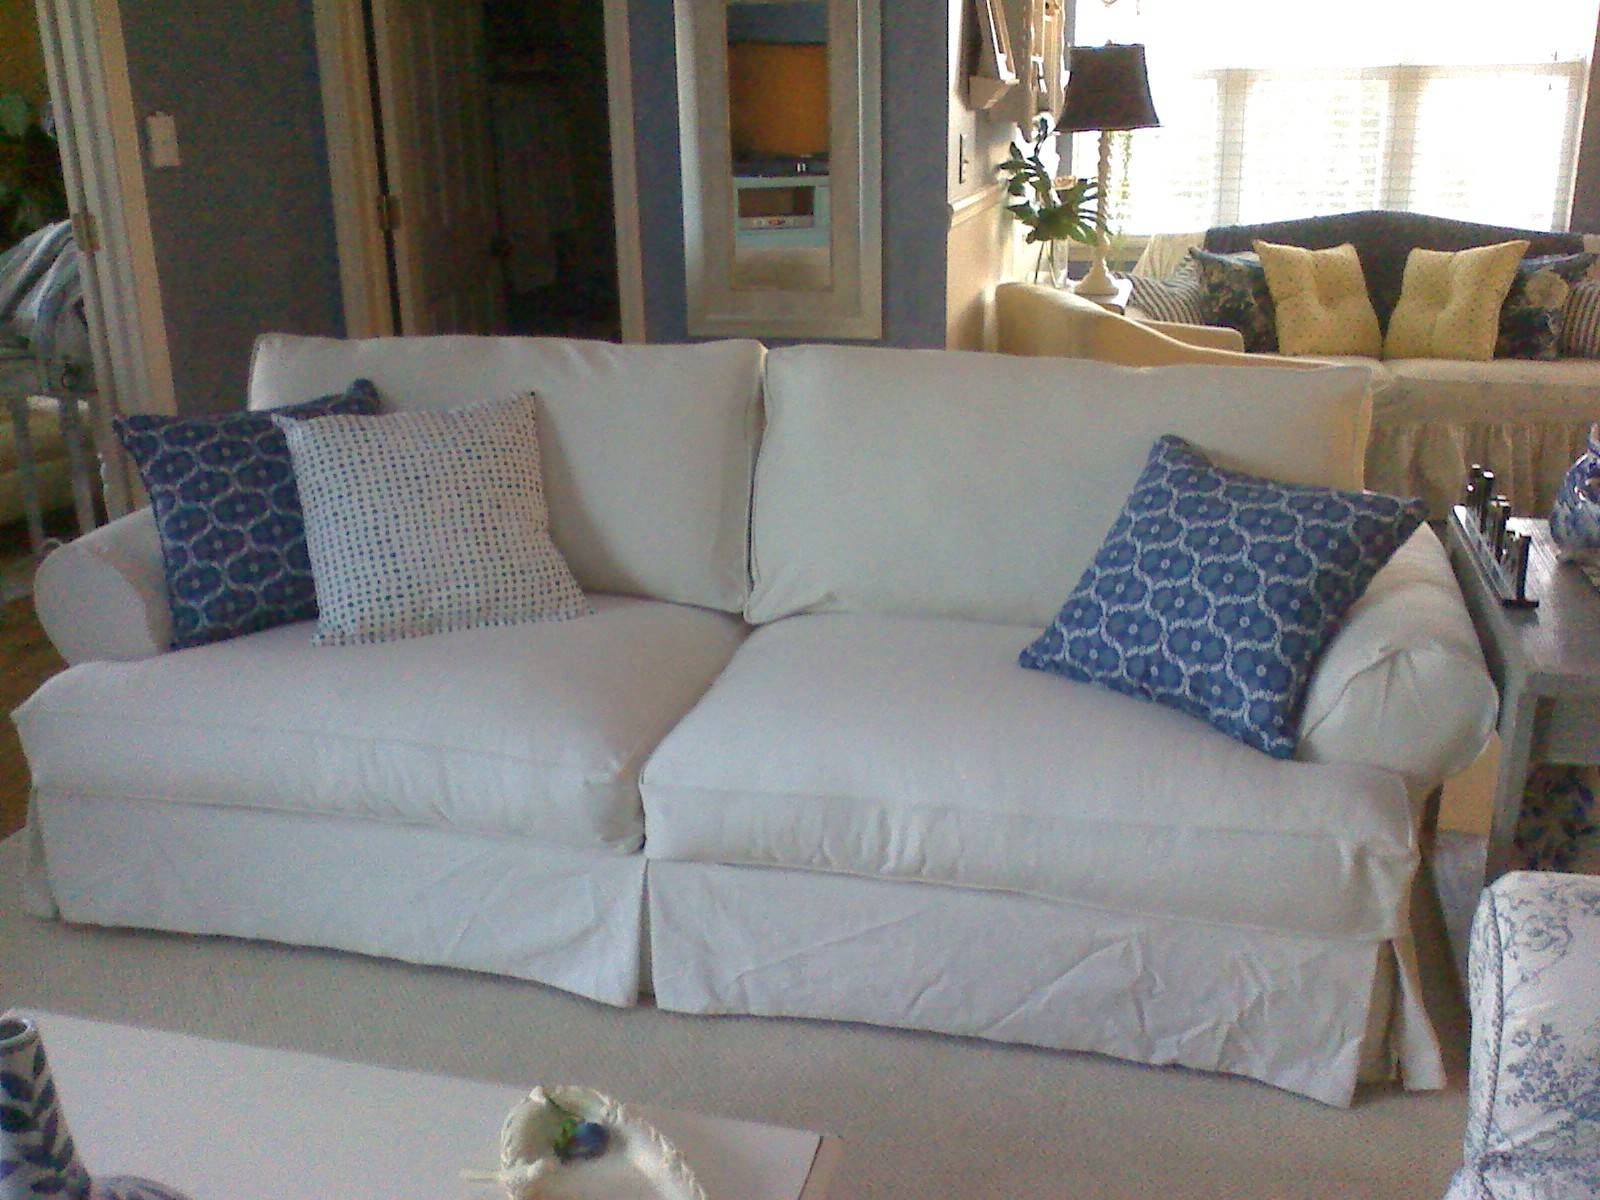 Replacement Slipcover Outlet- Replacement Slipcovers For Famous intended for Rowe Slipcovers (Image 11 of 15)